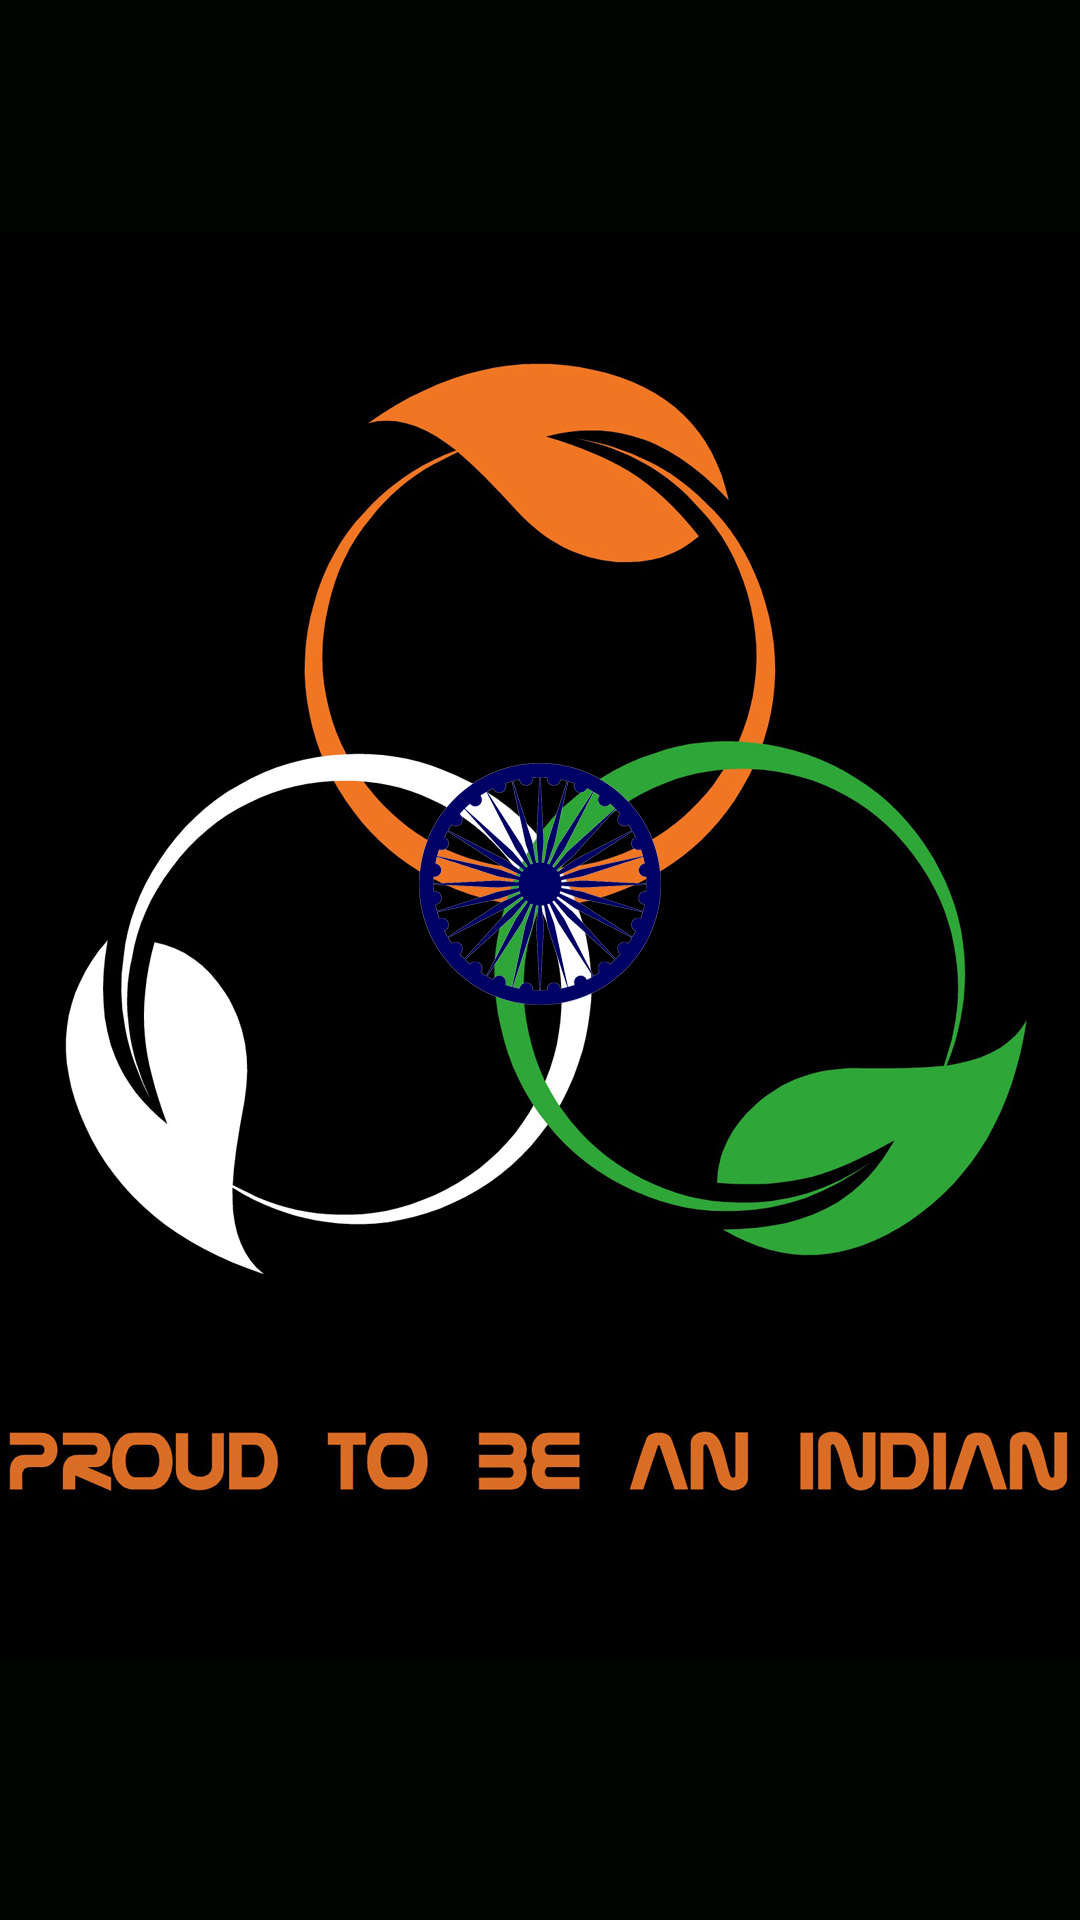 india flag for mobile phone wallpaper 10 of 17 – proud to be an